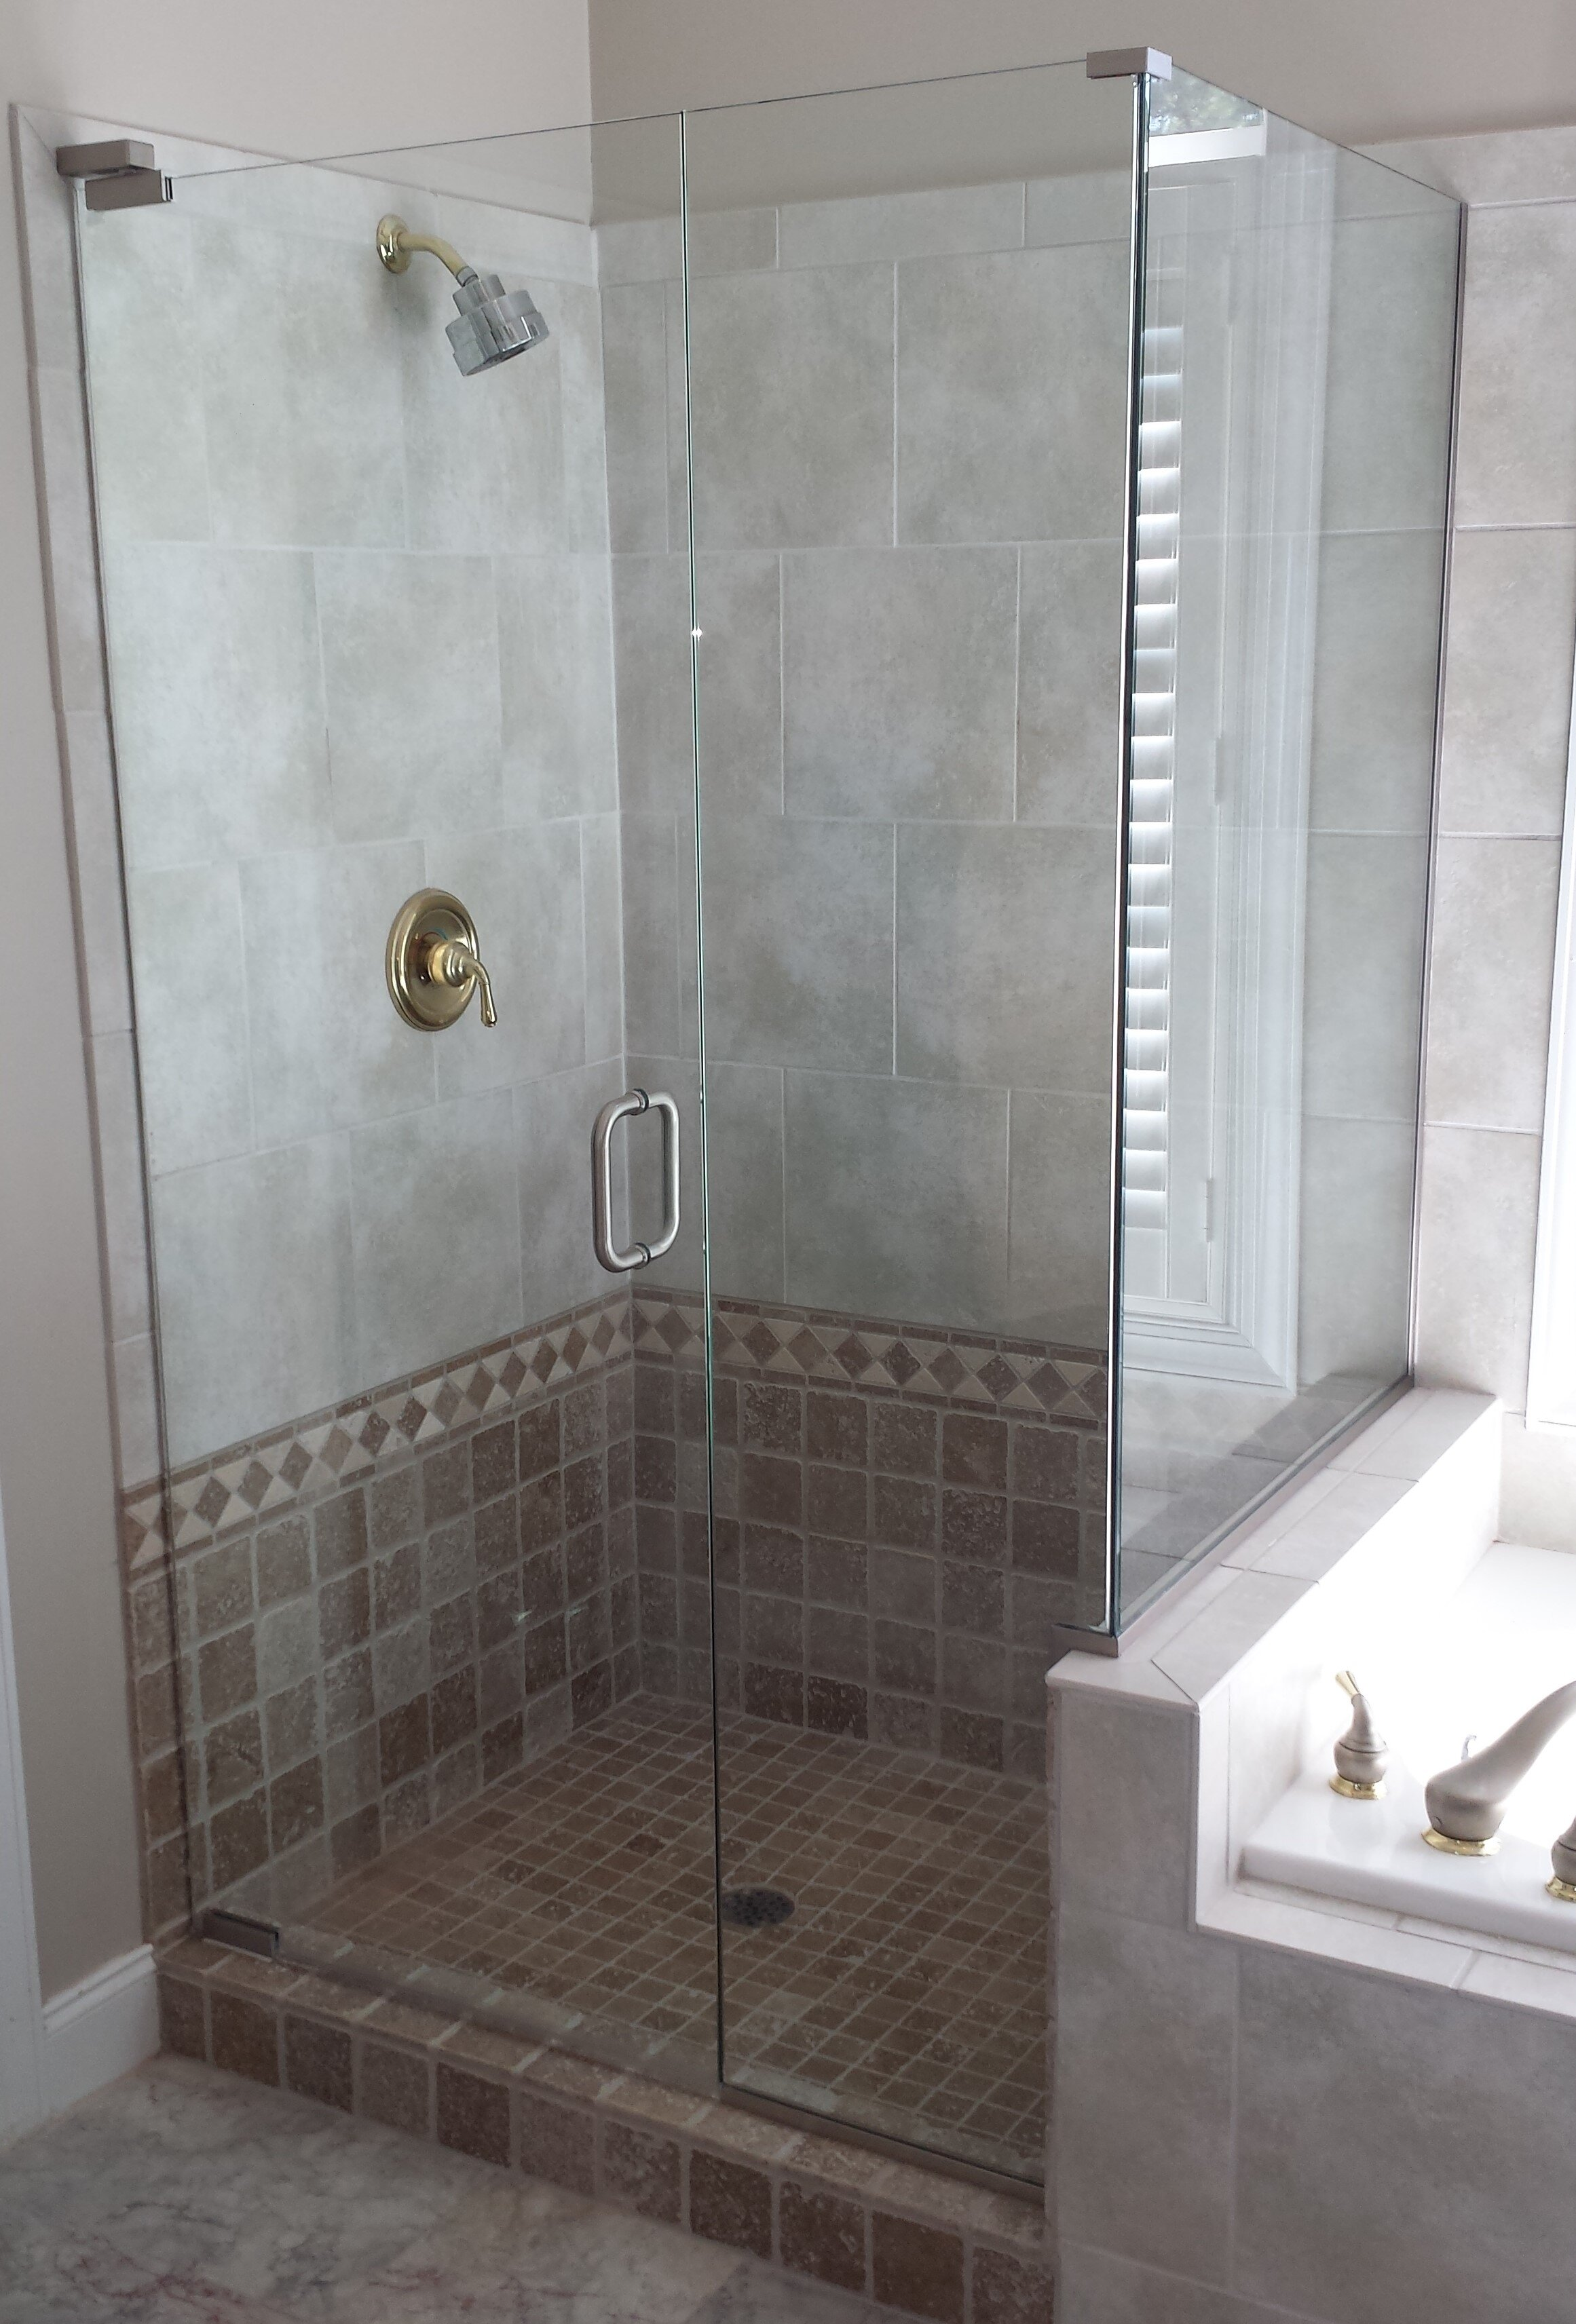 Shower Doors — D & D Glass Co. Inc.